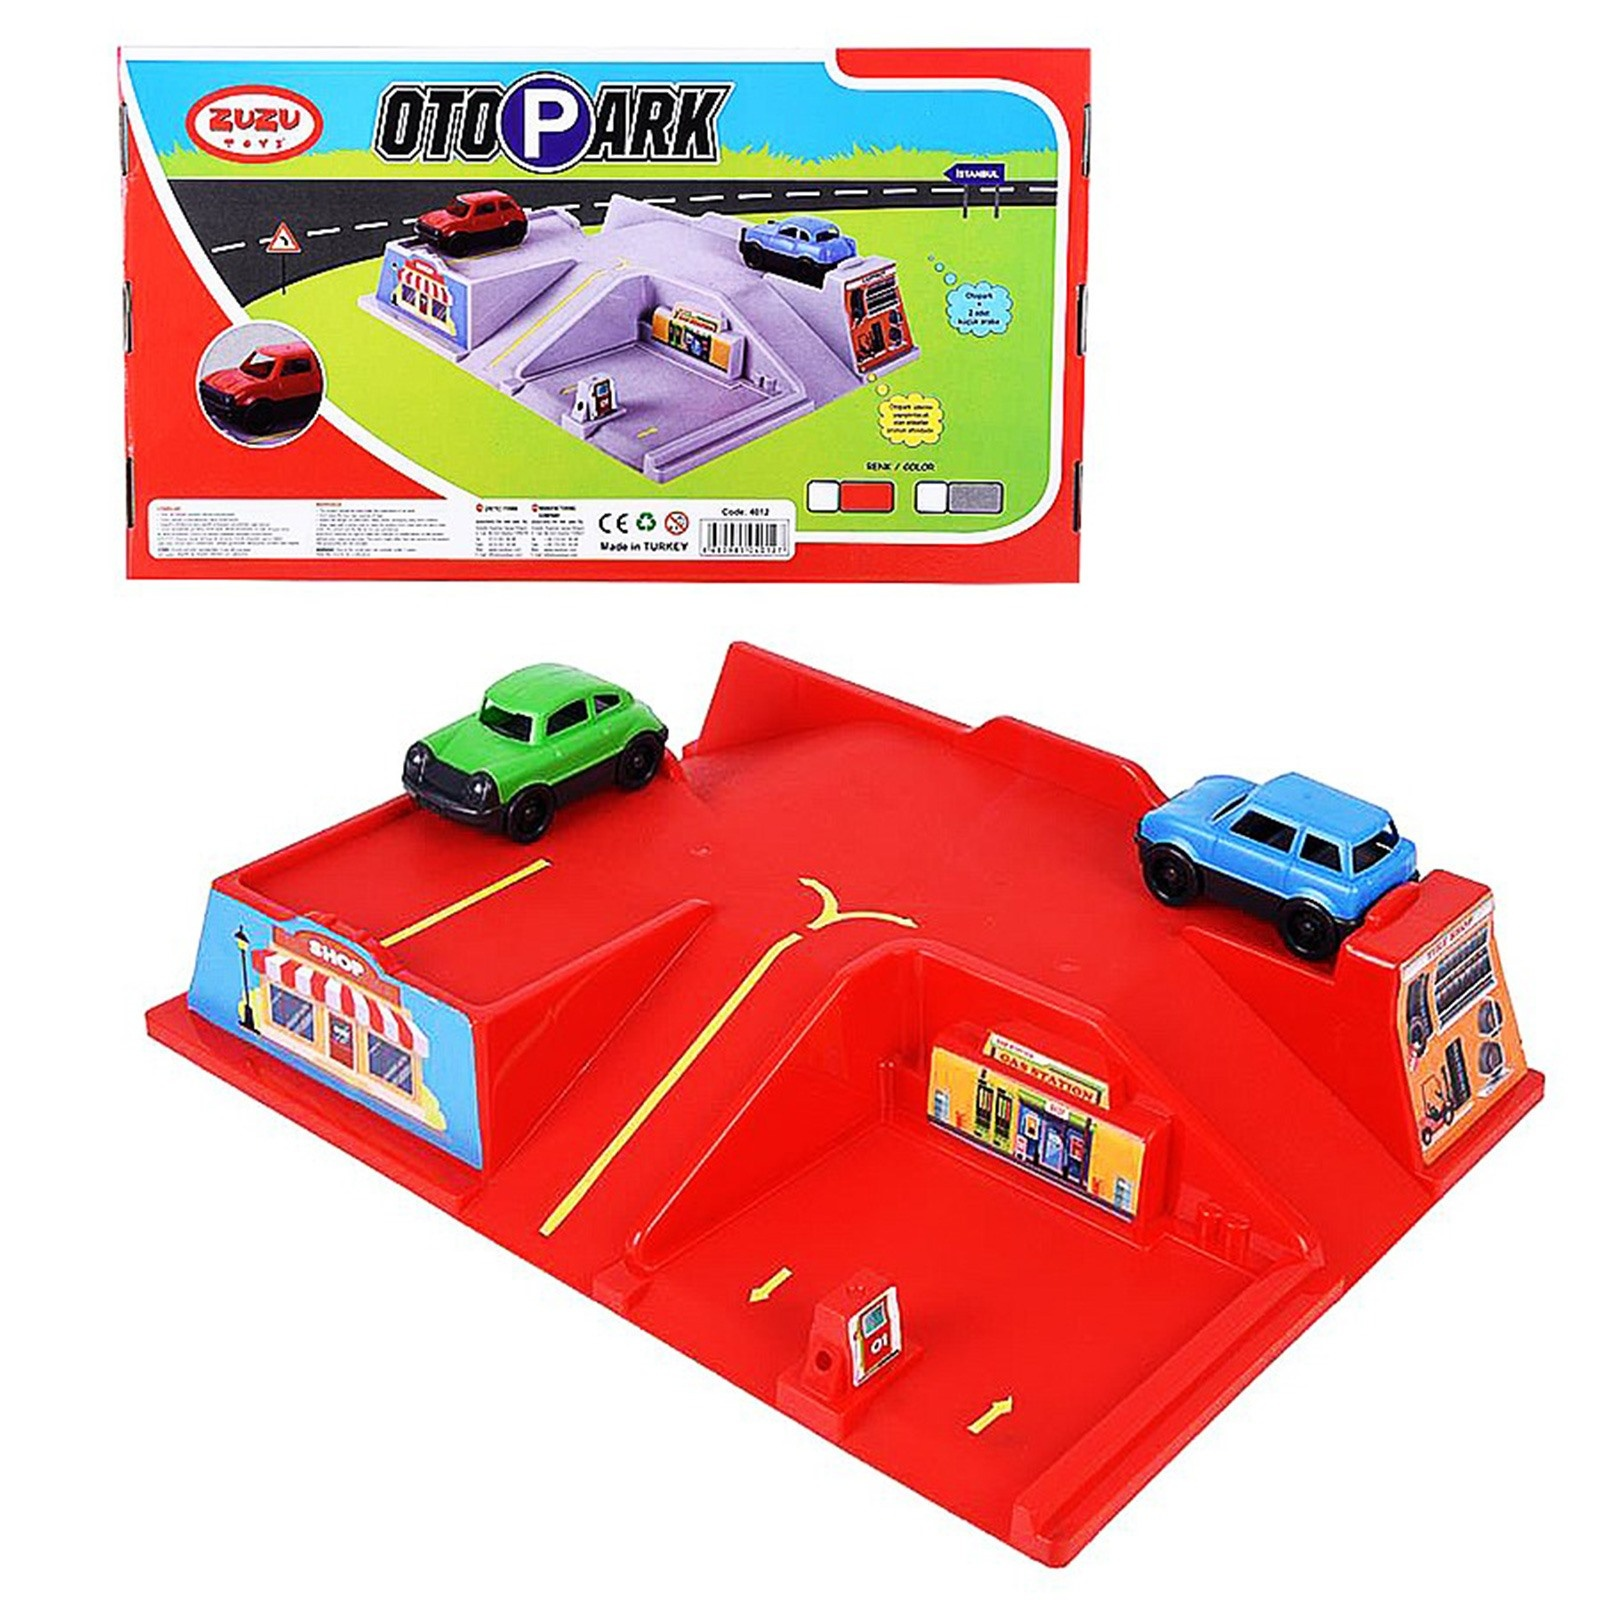 Ebebek Zuzu Oto Parking Set With Car